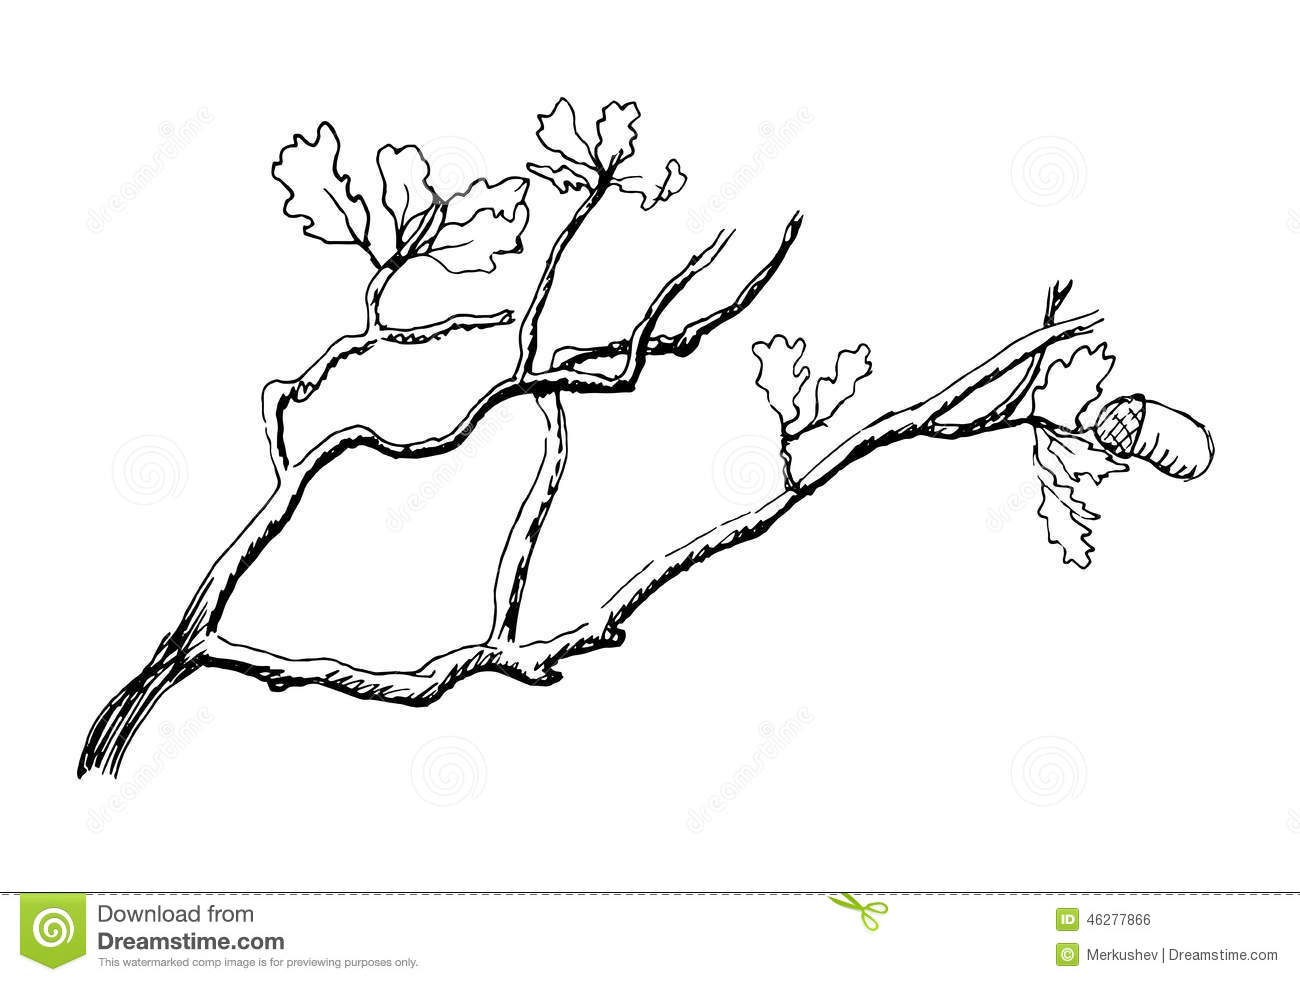 The Branch Of Oak Tree Stock Vector Illustration Of Leaf